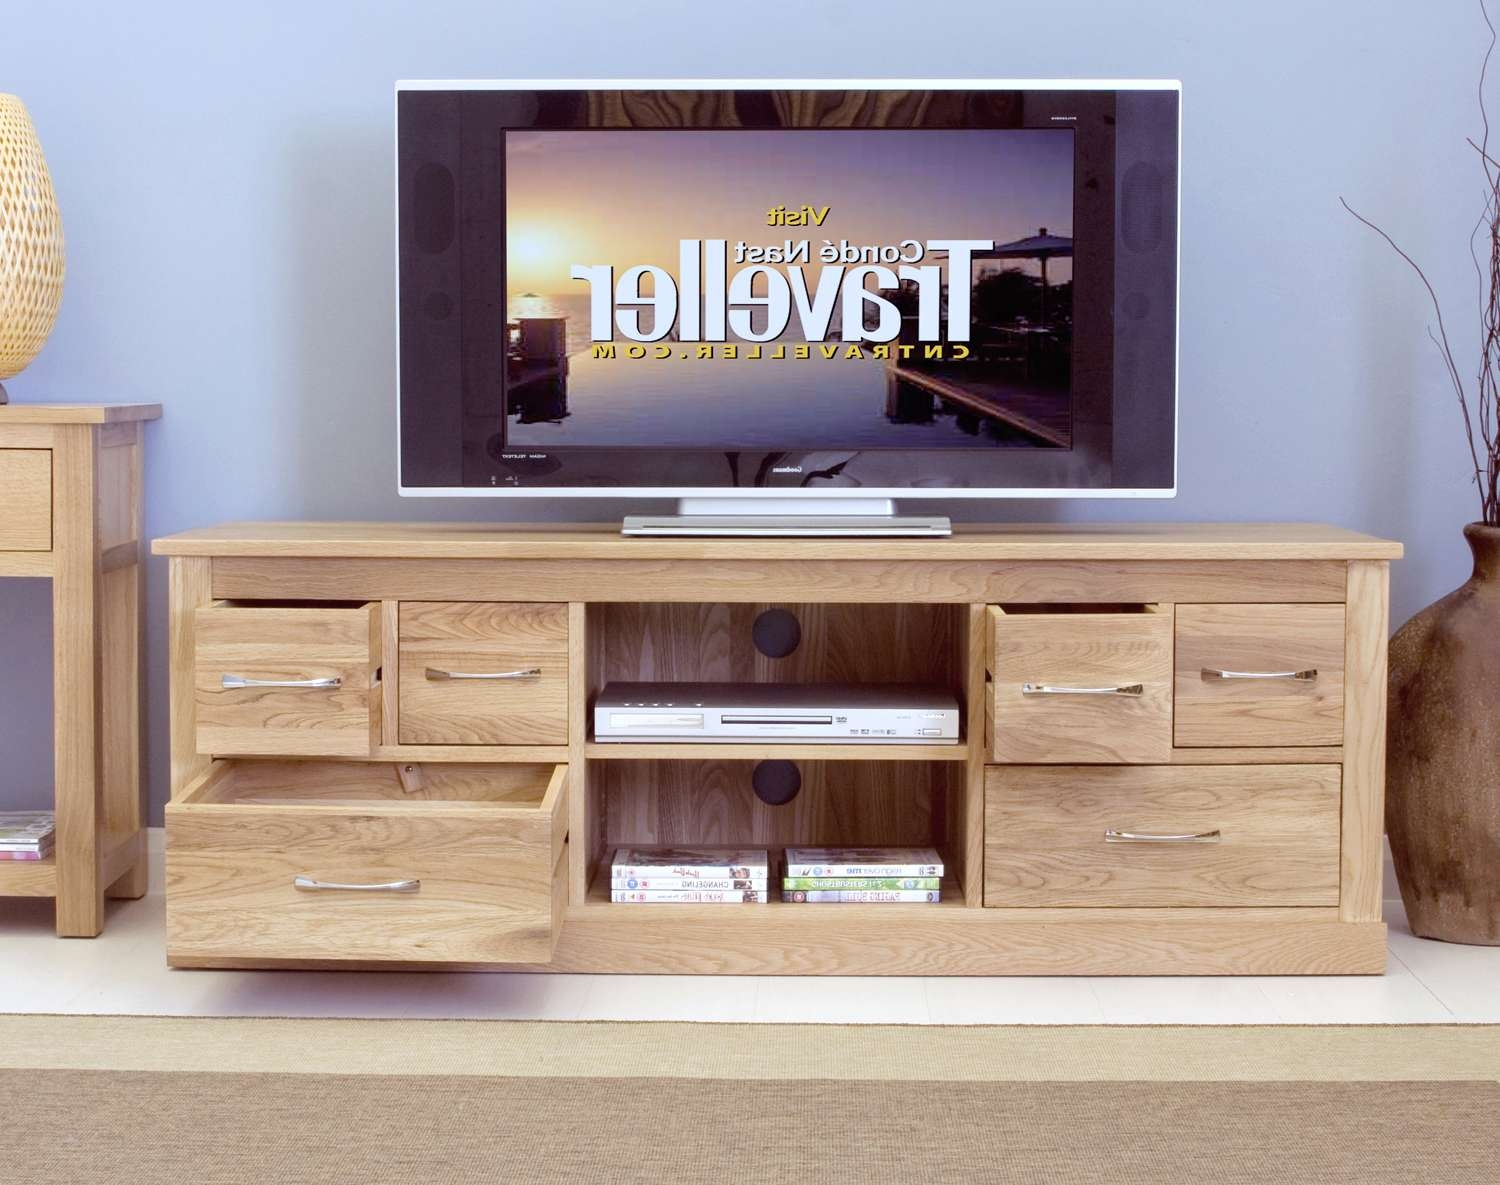 Oak Widescreen Tv Cabinet With 6 Drawers | Big Blu Furniture Within Widescreen Tv Cabinets (Gallery 20 of 20)